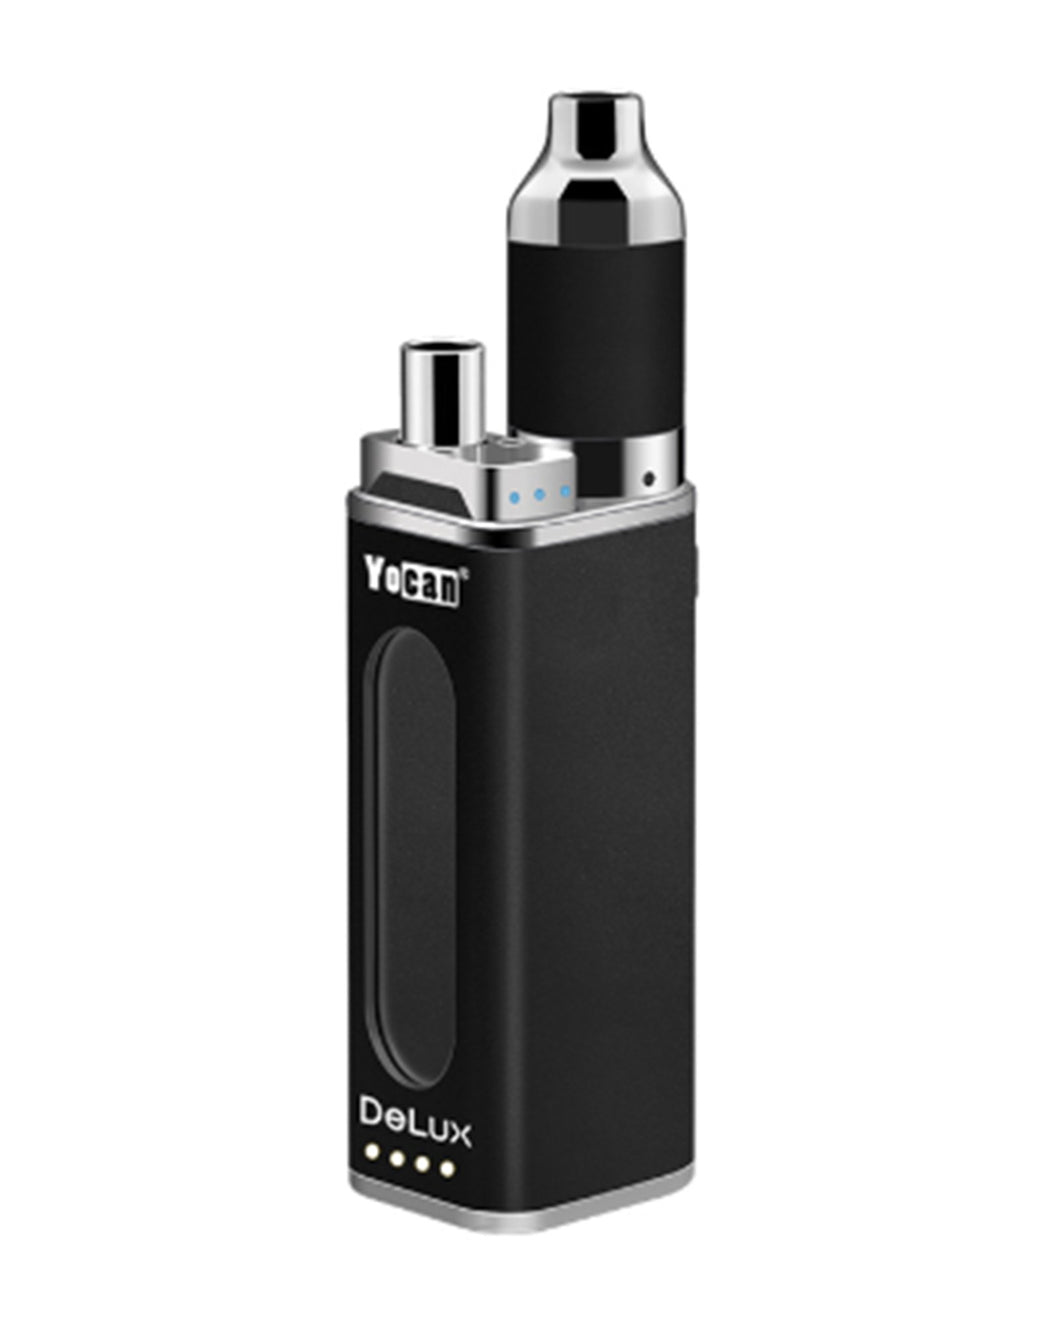 Yocan DeLux Vaporizer for $74.99 at Weedcommerce Marketplace